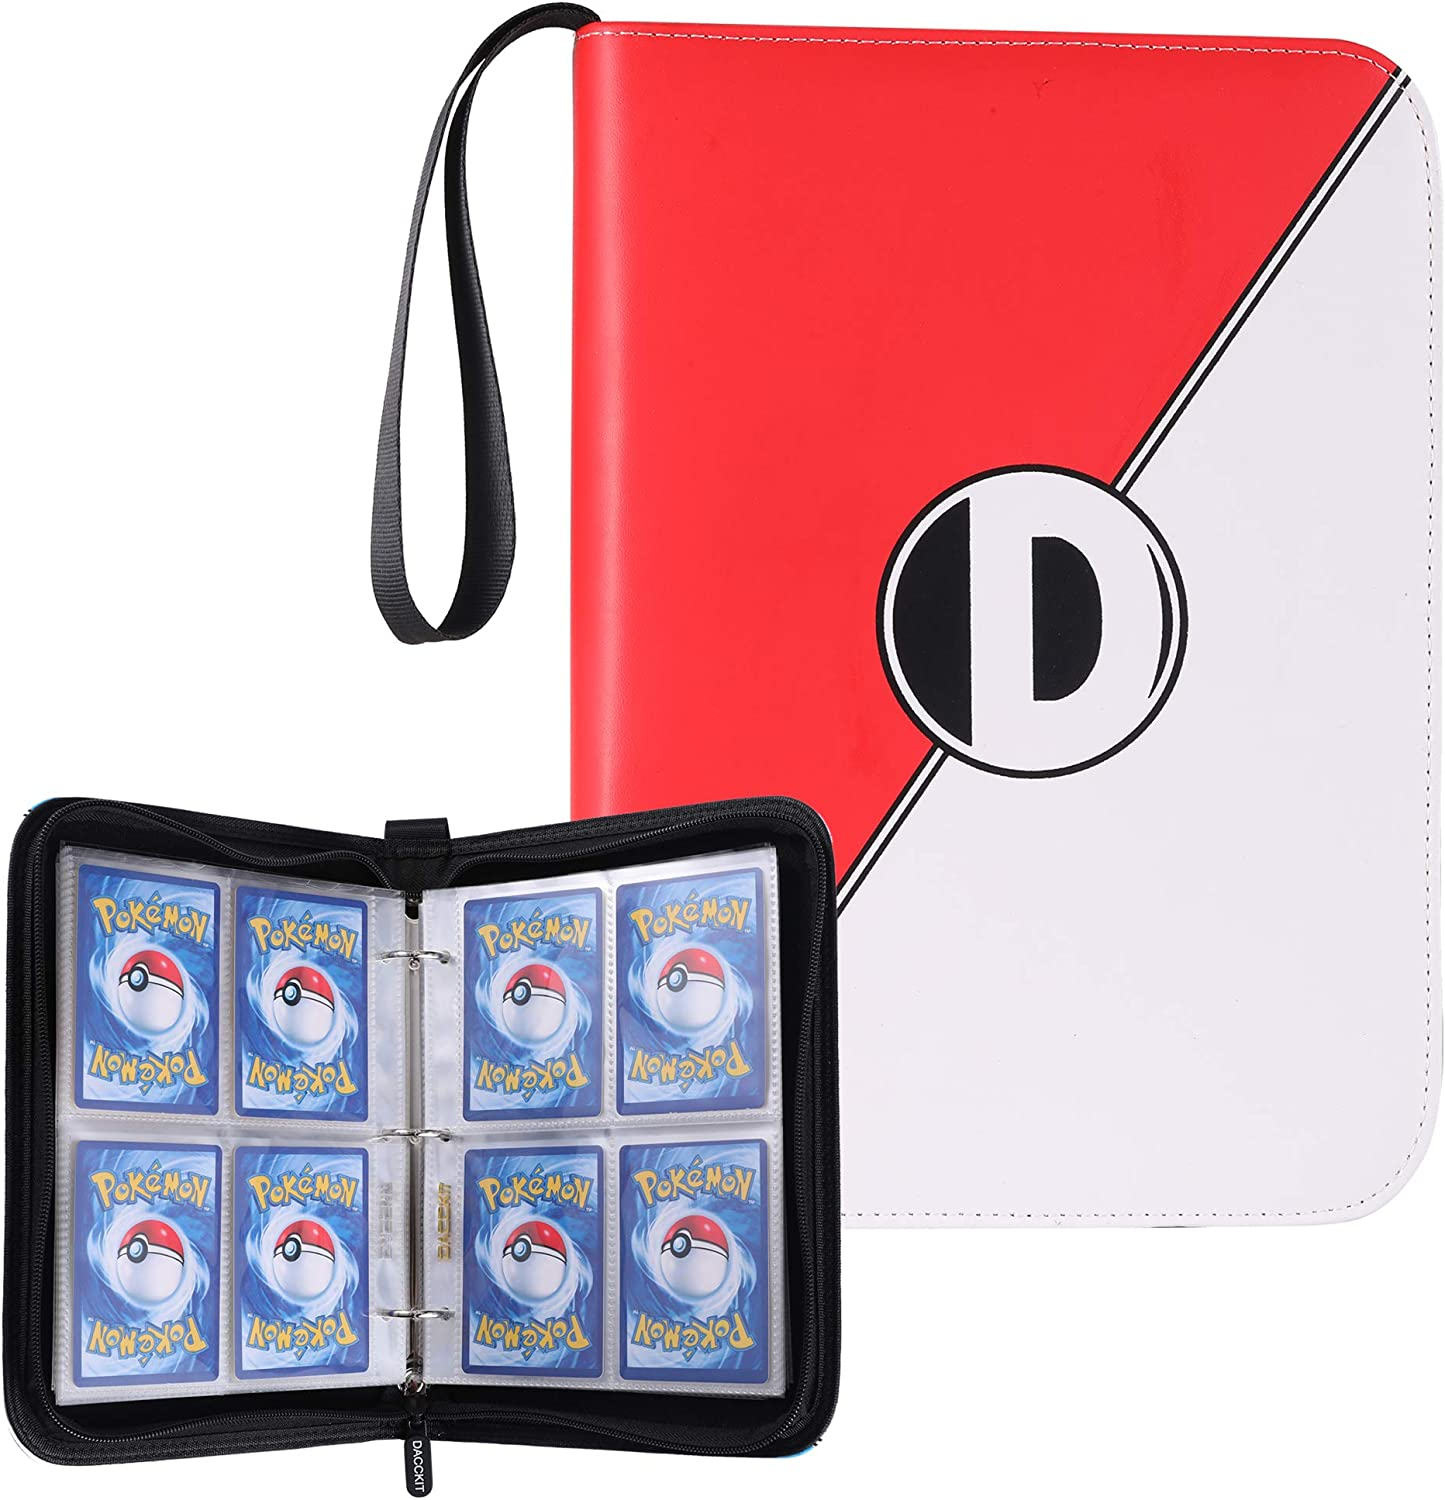 D DACCKIT Carrying Case Binder Compatible with Pokemon Card, Holds Up to 400 Cards - Trading Cards Collectors Album with 50 Premium 4-Pocket Pages (Red White)